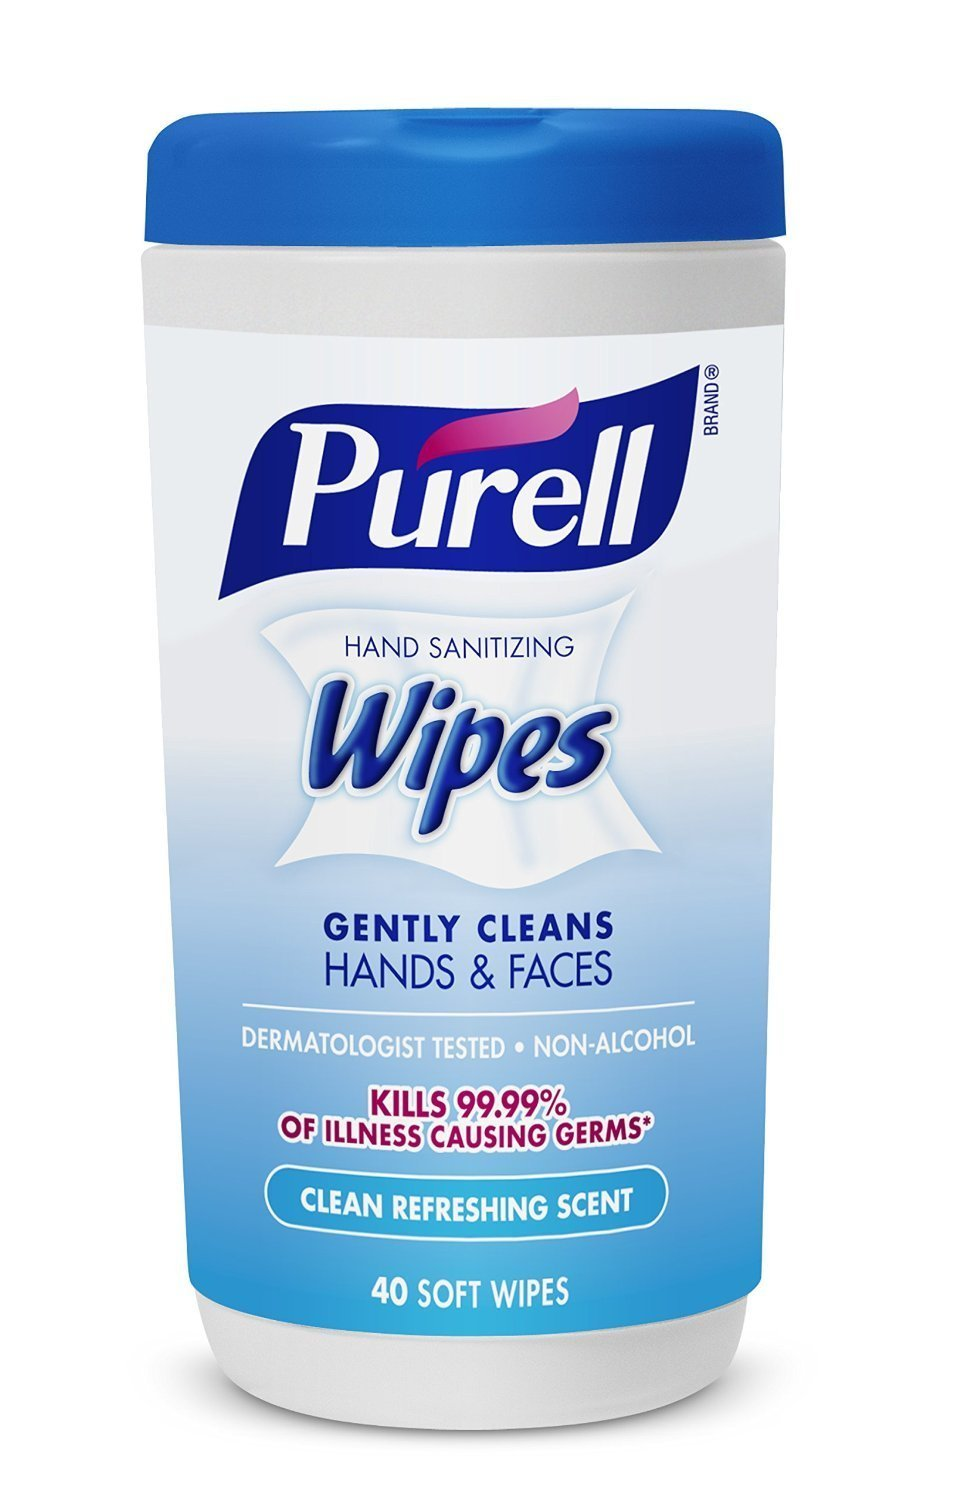 Purell 9120-06-CMR Hand Sanitizing Wipes, Clean Refreshing Scent VFDHbe,40 Count Canister (Pack of 24)